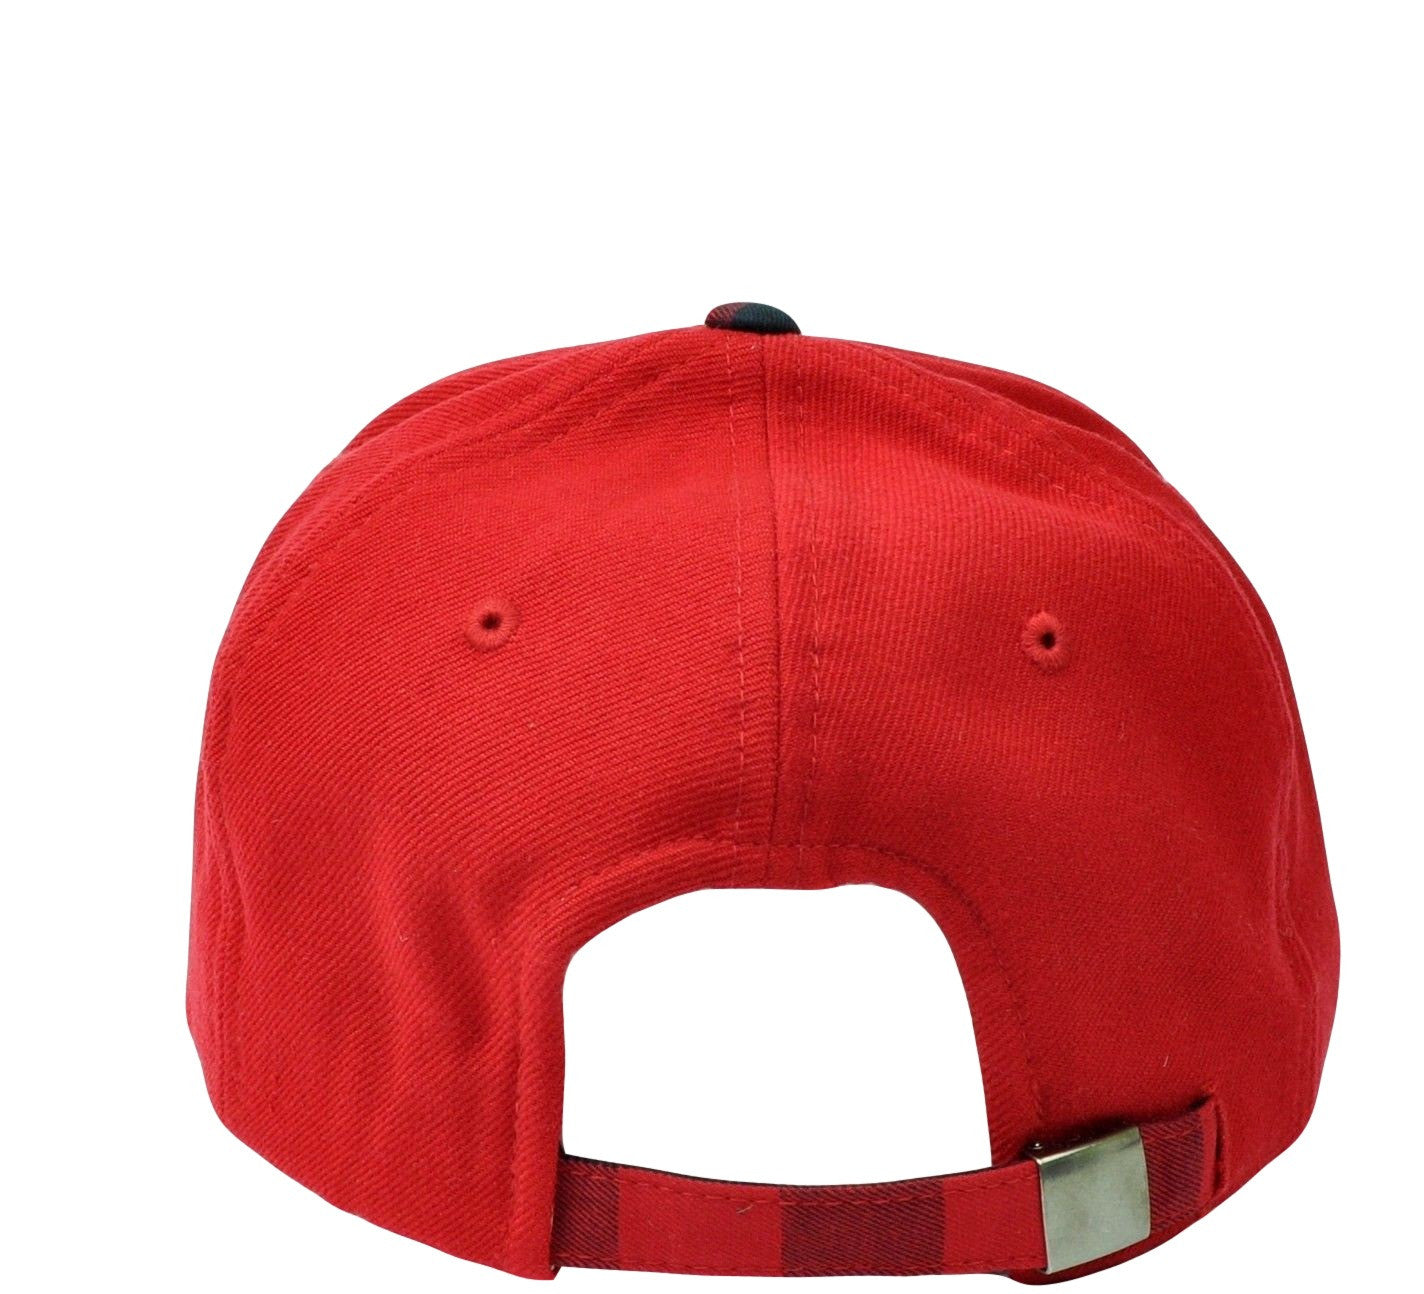 Blackhawks Retro Strapback